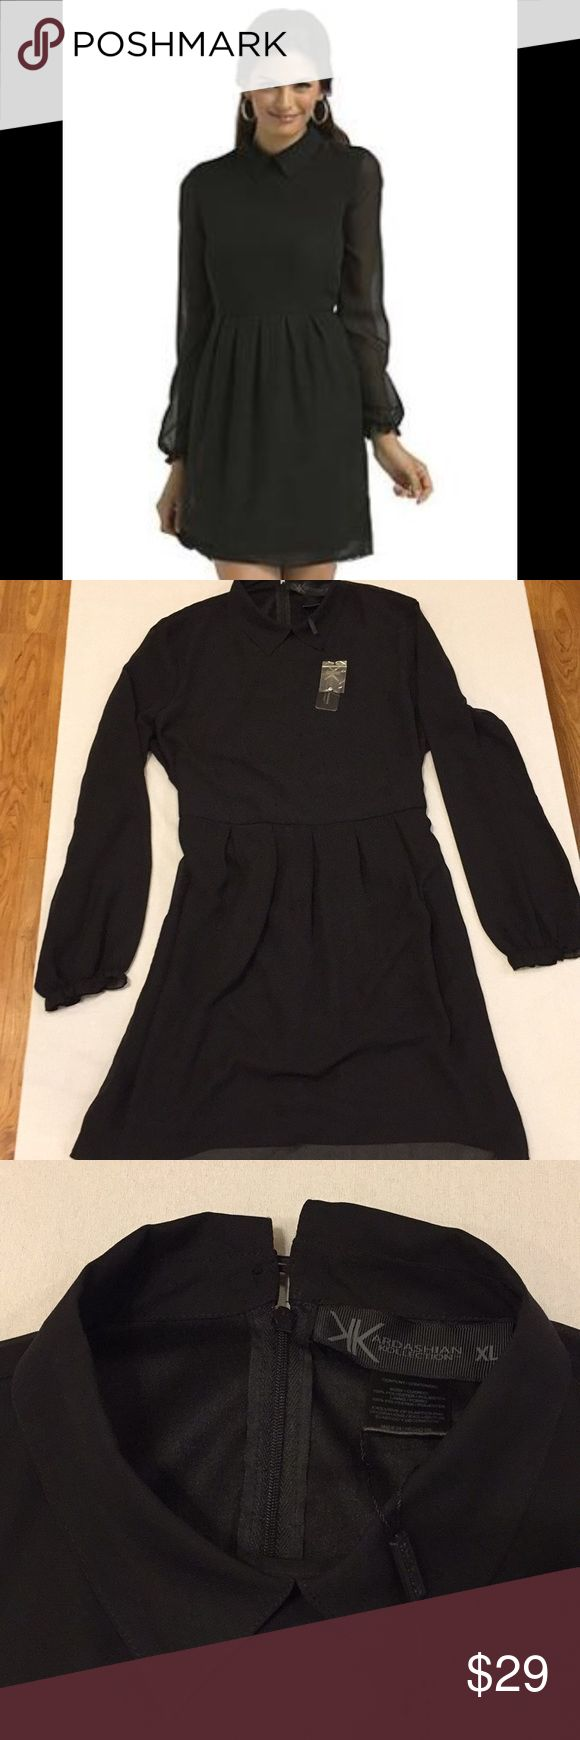 """Kardashian Kollection Black Dress Size XL NWT Super adorable Kardashian Kollection Fall 2013 Collection. Sheer sleeves and high collar makes this a perfect dress for the office or any formal occasion. Size XL measurements: across armpits 22"""", waist 17.5"""", length 37.5"""", across shoulders 17"""" fabric is 100% polyester. Kardashian Kollection Dresses Midi"""